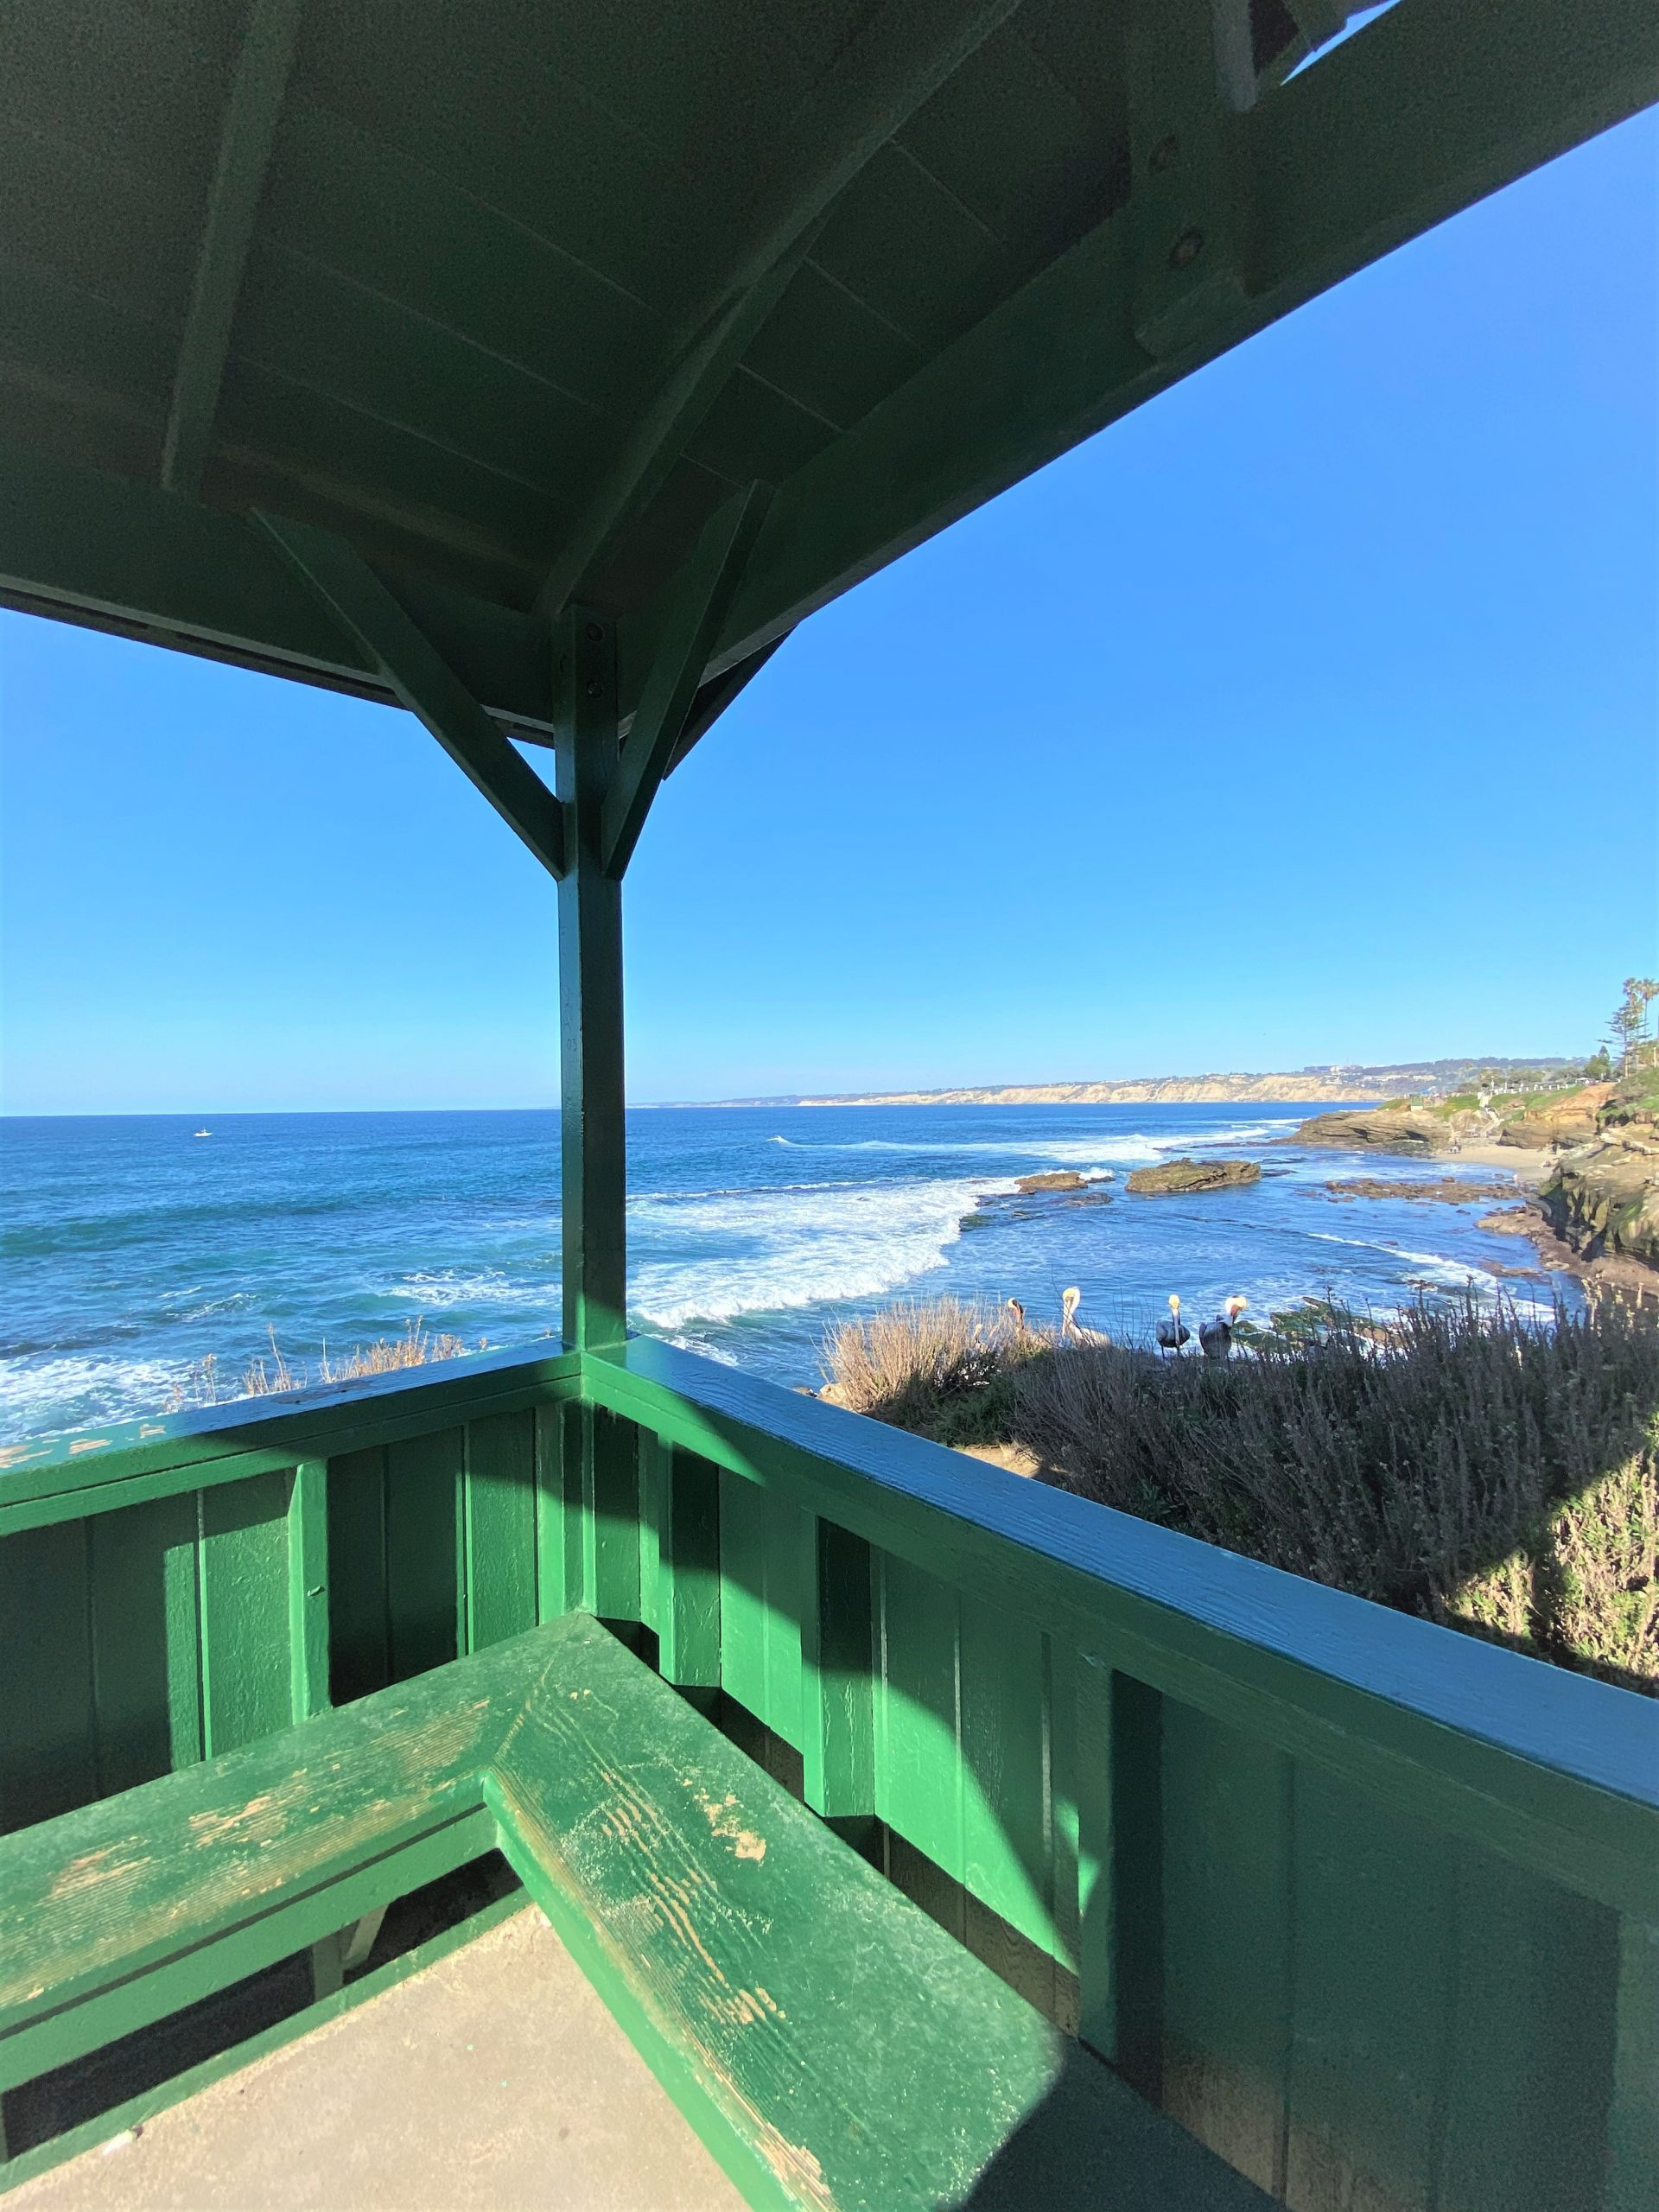 6 Cool Things To Do In San Diego, California